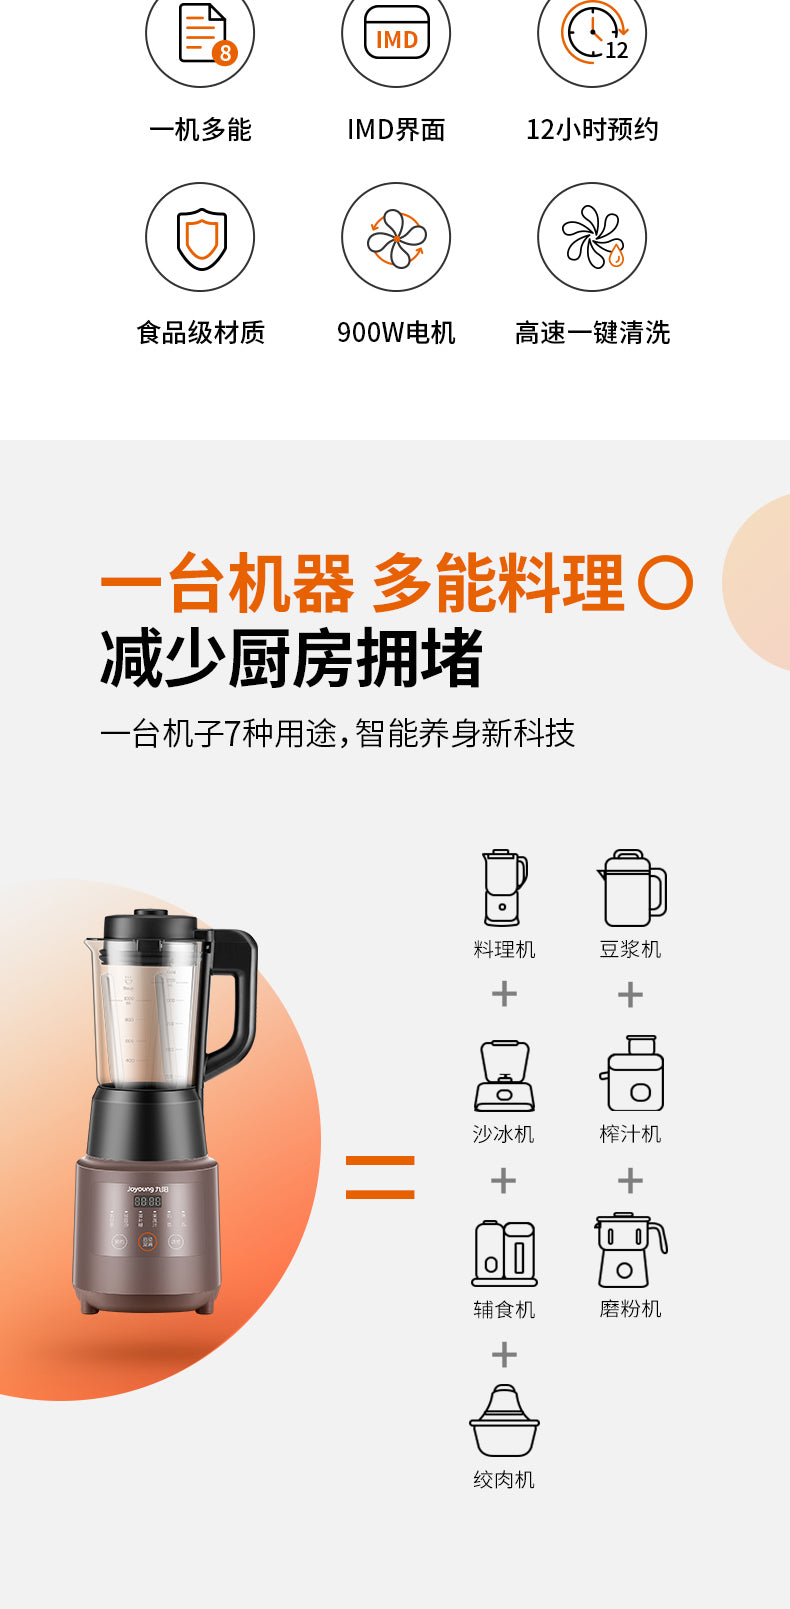 Joyoung L12-Energy61 High Speed Blender/ Hot and Cold/ 32000r/min / 3-pin SG Plug/ 1 Year SG Warranty